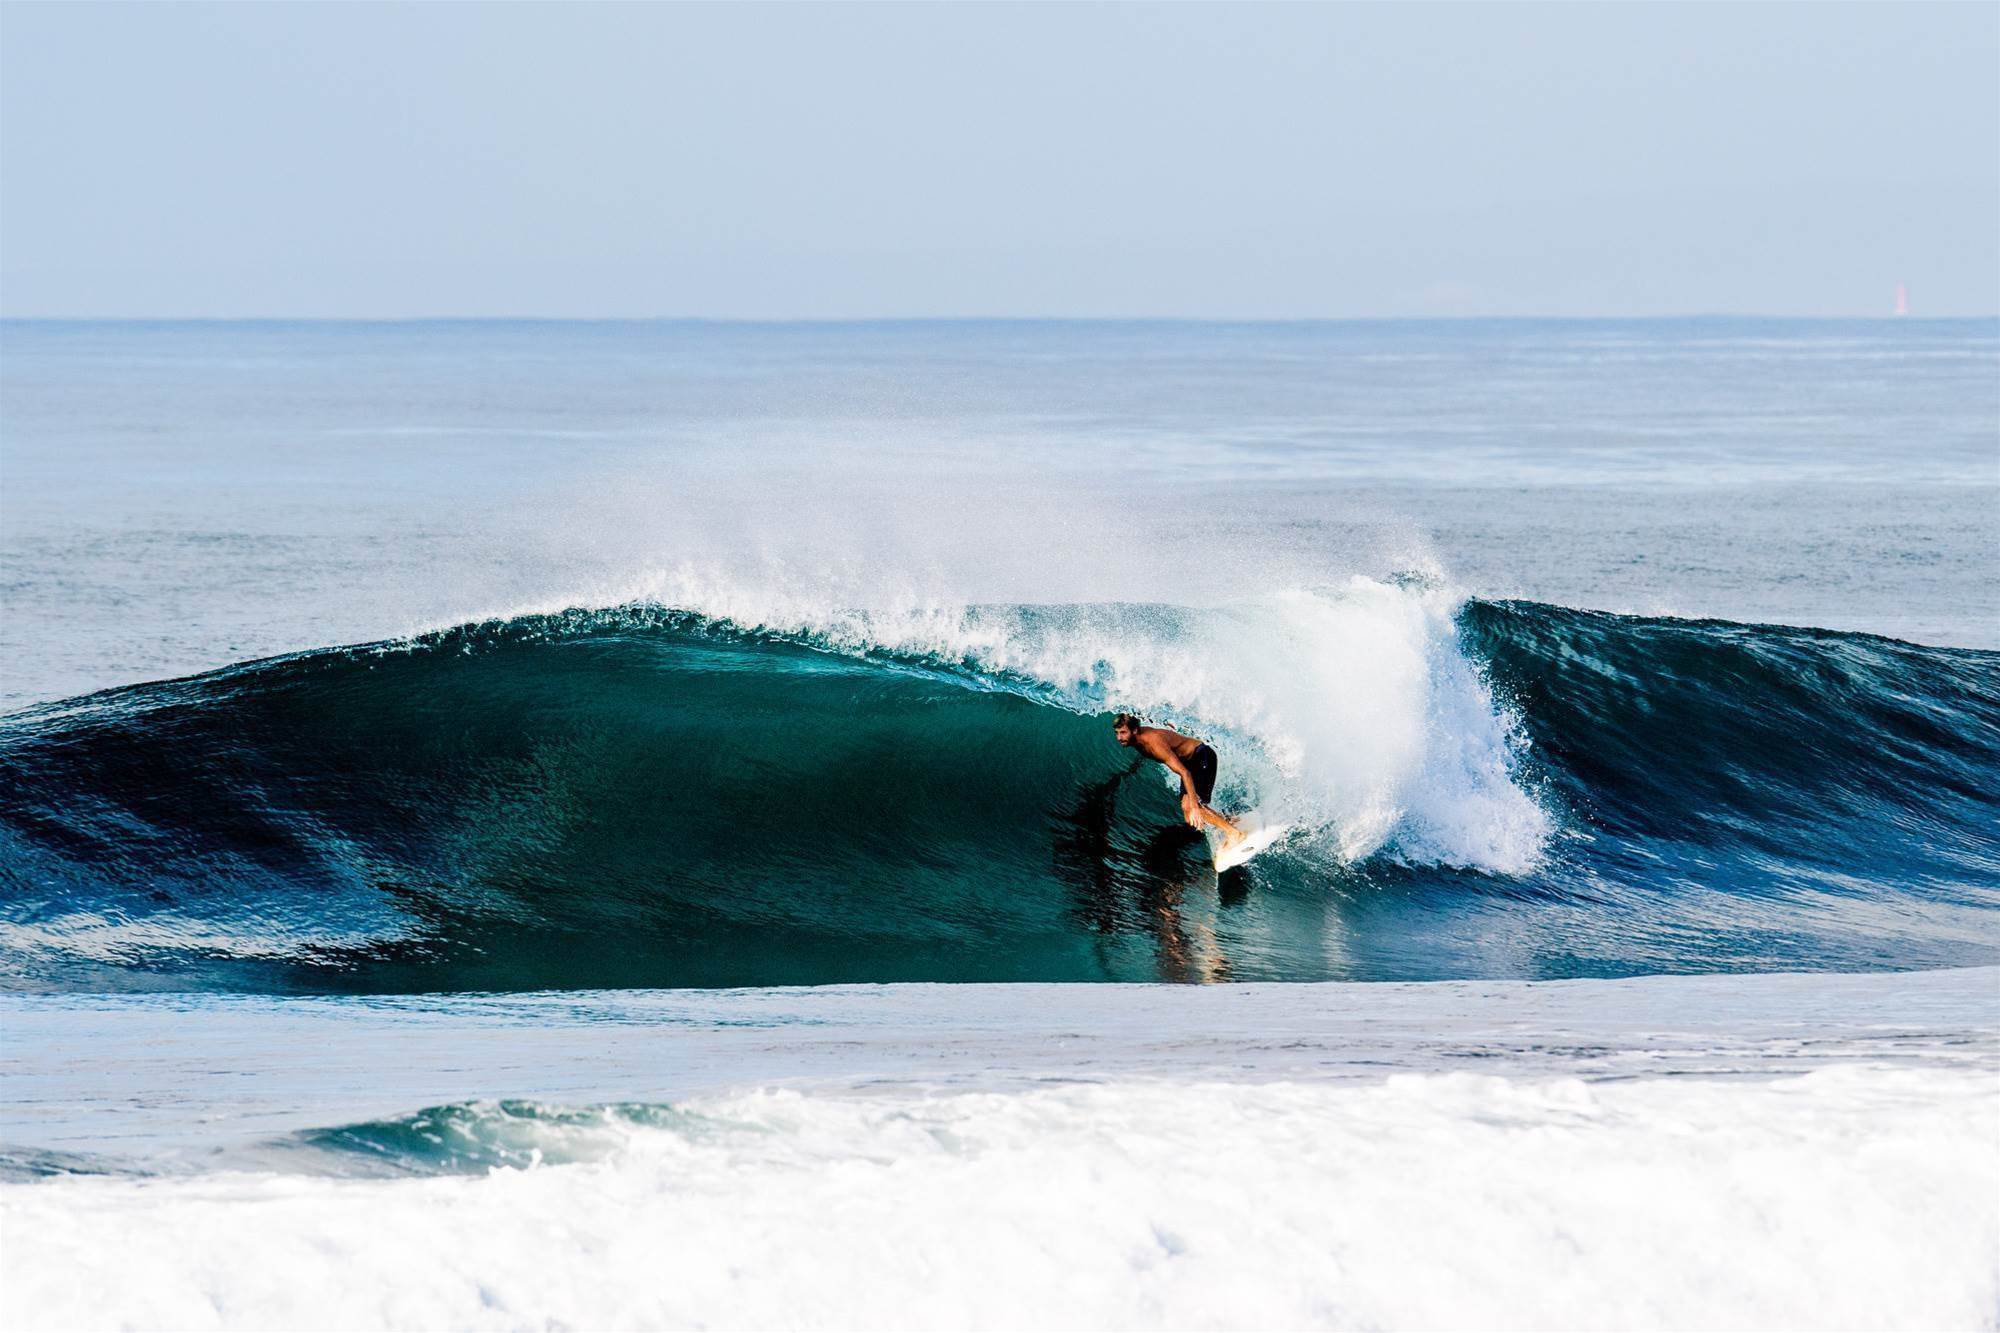 Bali: Lost Paradise or still a surfer's Promised Land?